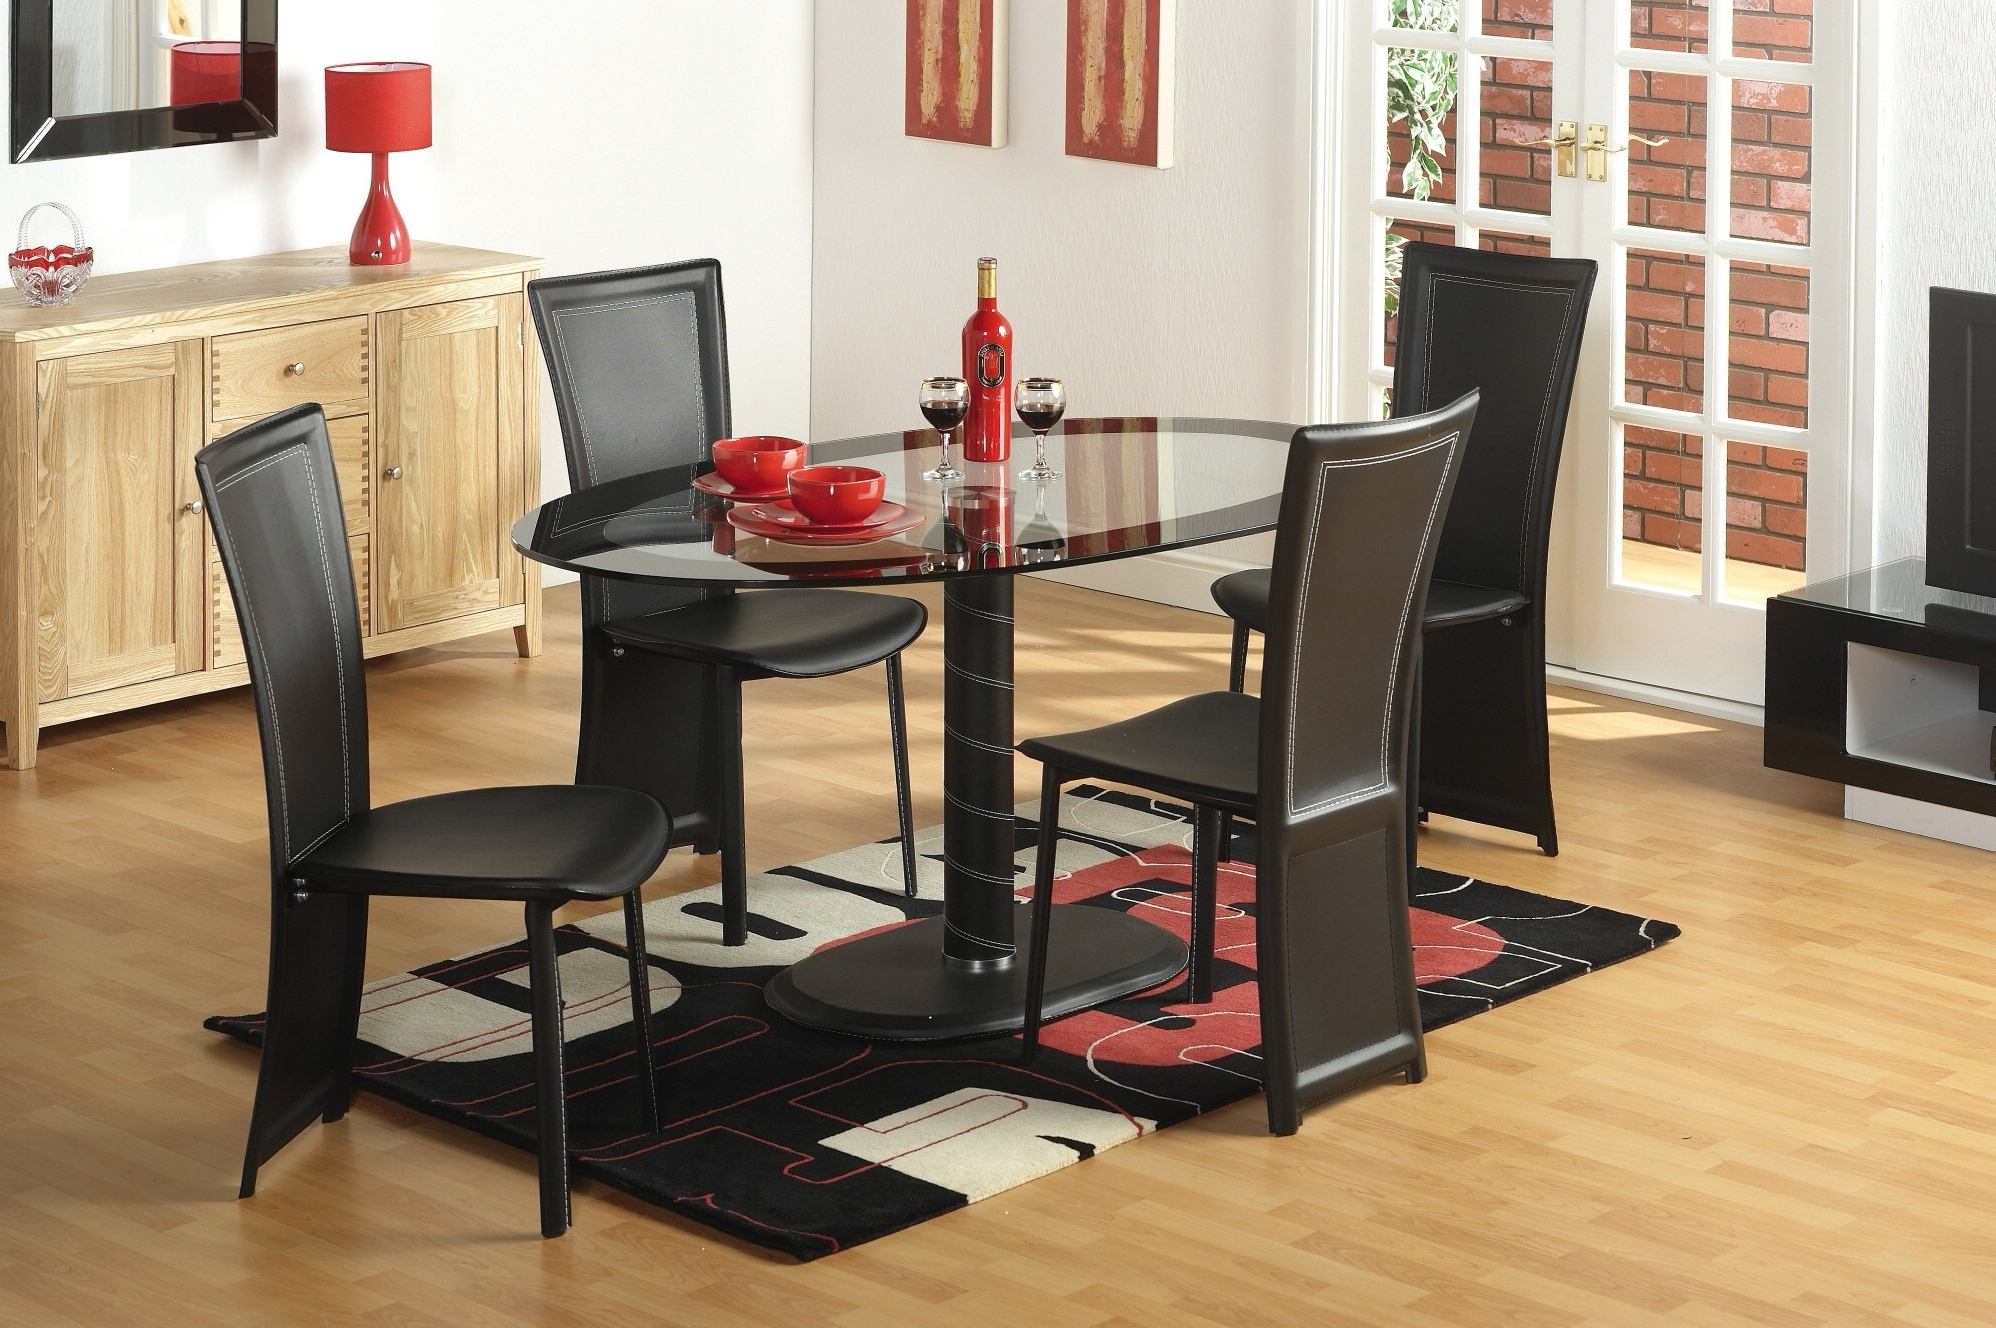 Famous Round Black Glass Dining Tables And 4 Chairs In Glass Table & 4 Chairs : Tbs Discount Furniture, A Large Selection (View 19 of 25)